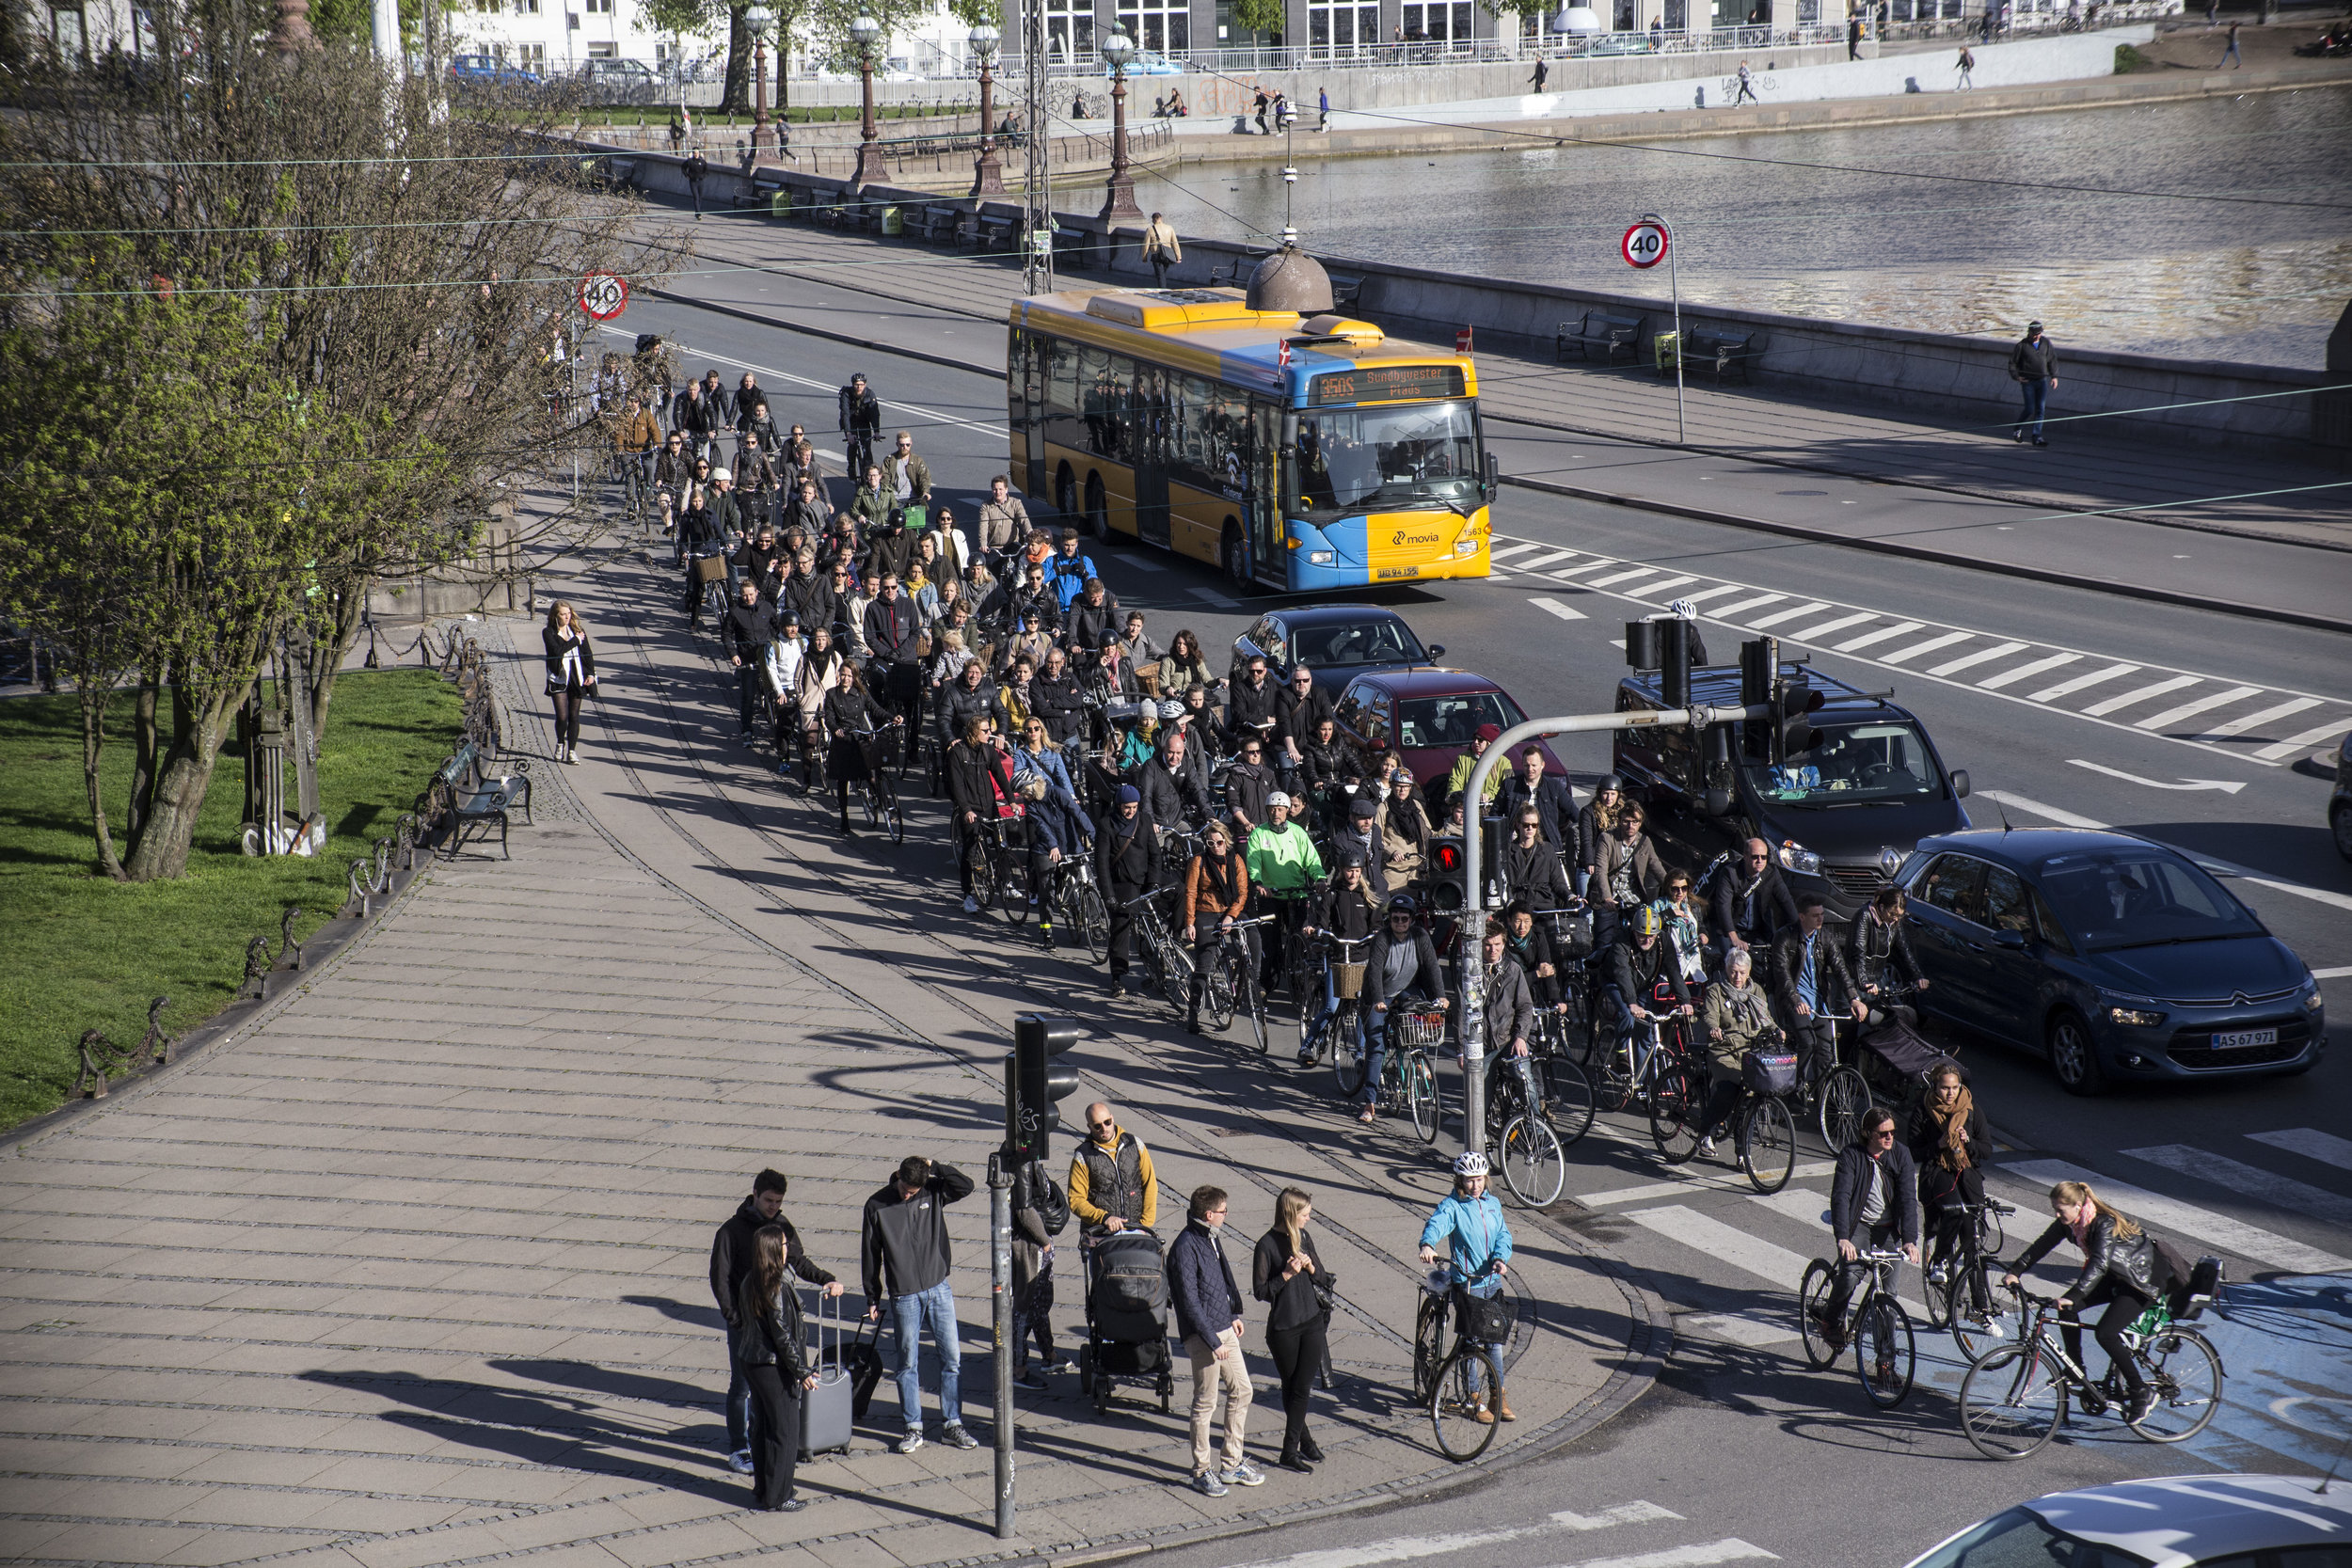 The busiest bicycle intersection in the world. (Image by Copenhagen Cycle Chic)